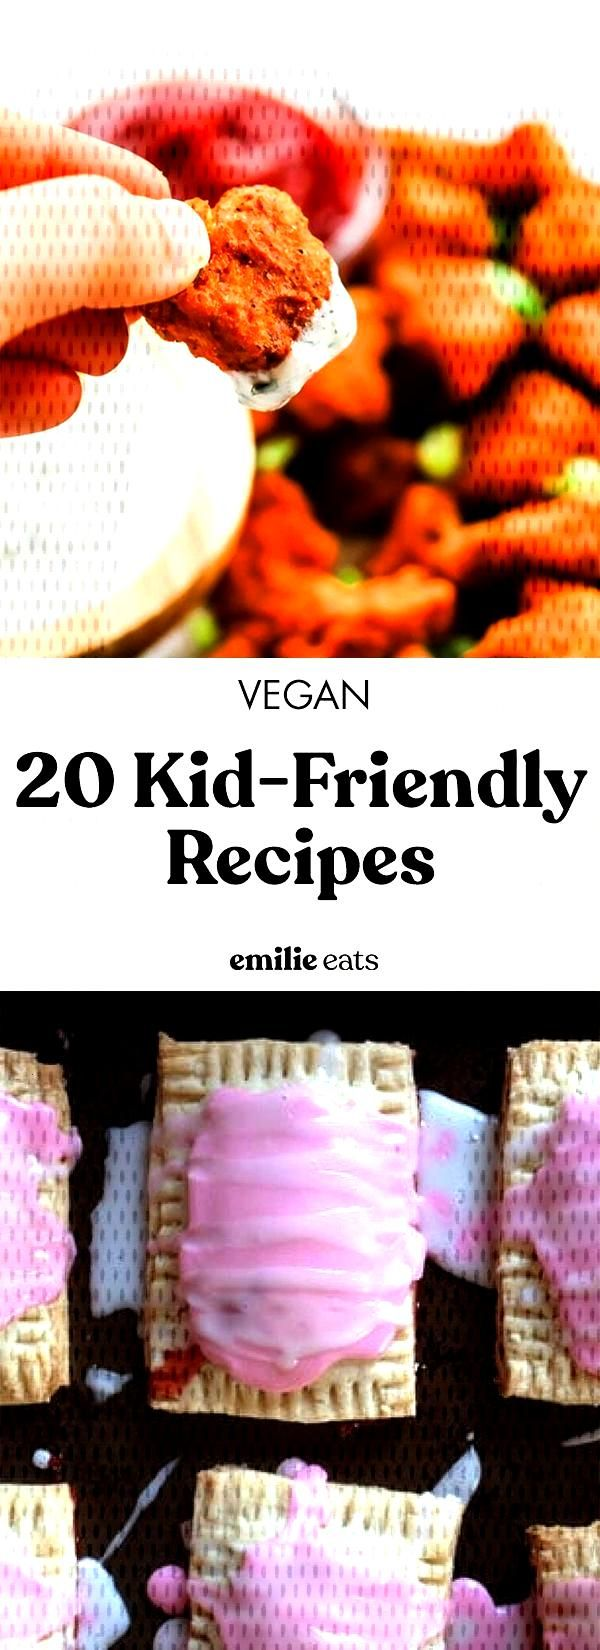 Try some of these 20 kid friendly vegan recipes to encourage the little ones in your family to eat